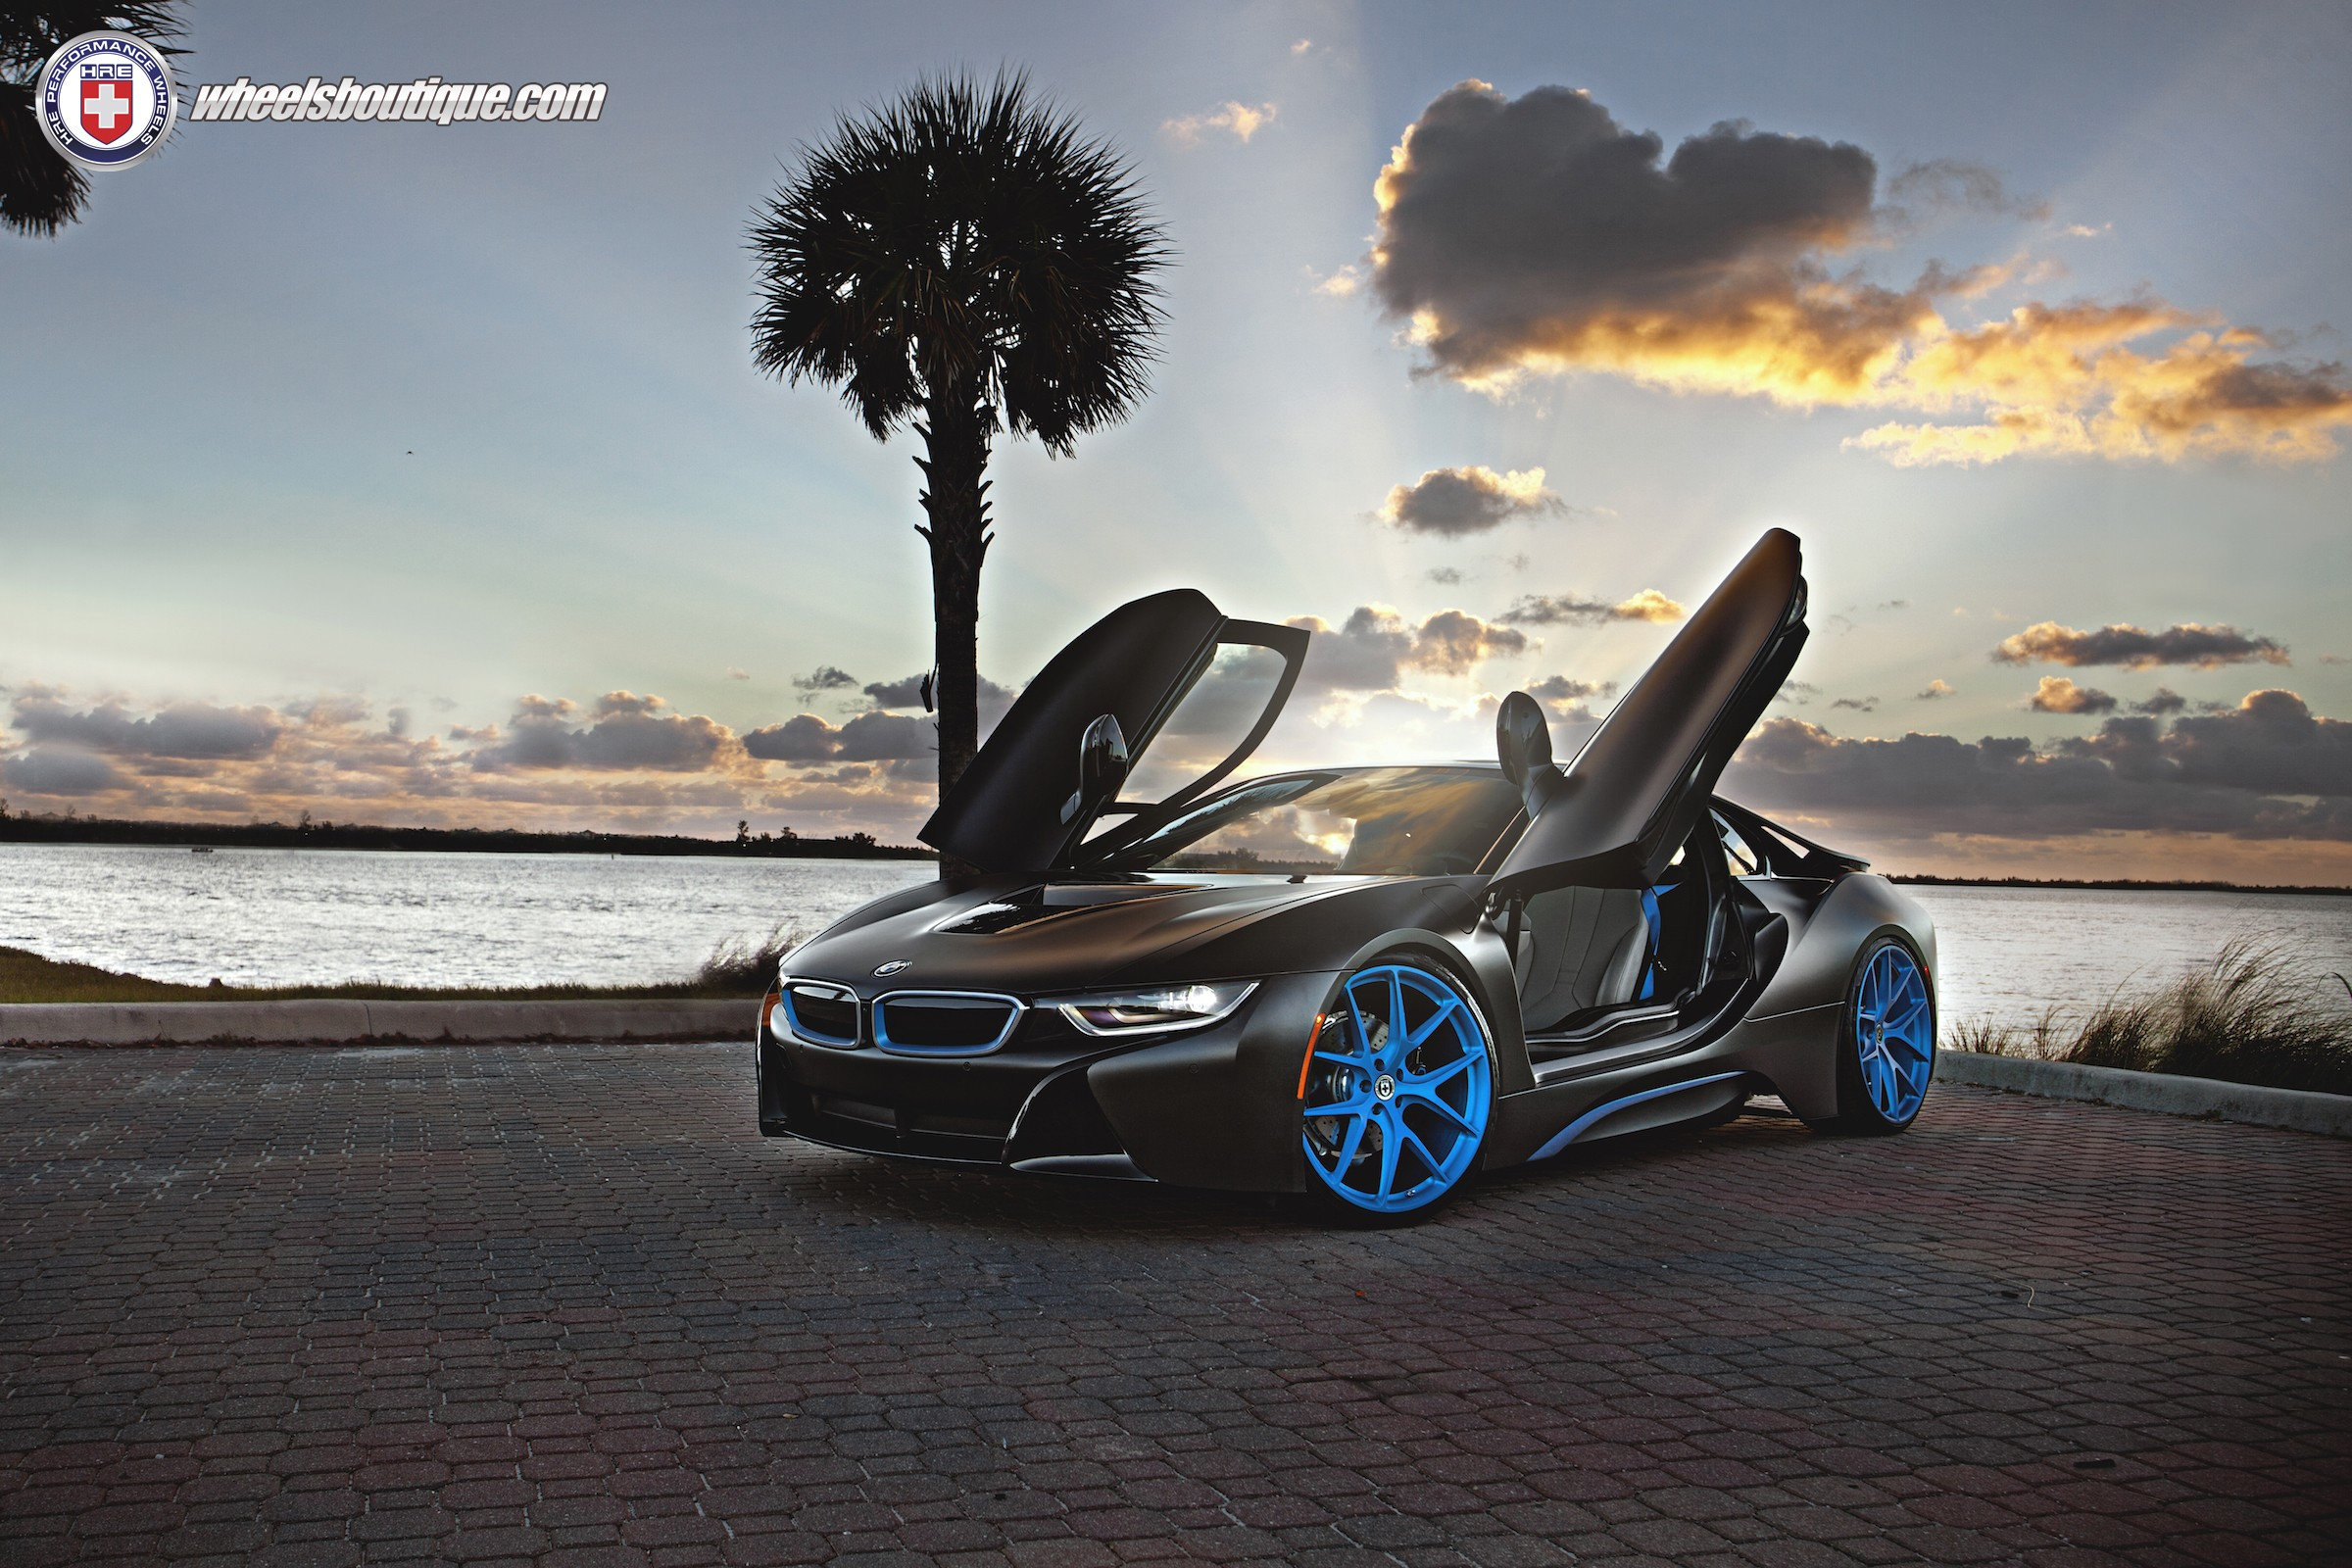 ... Matte Black Bmw I8 On Frozen Blue HRE P101 Wheels